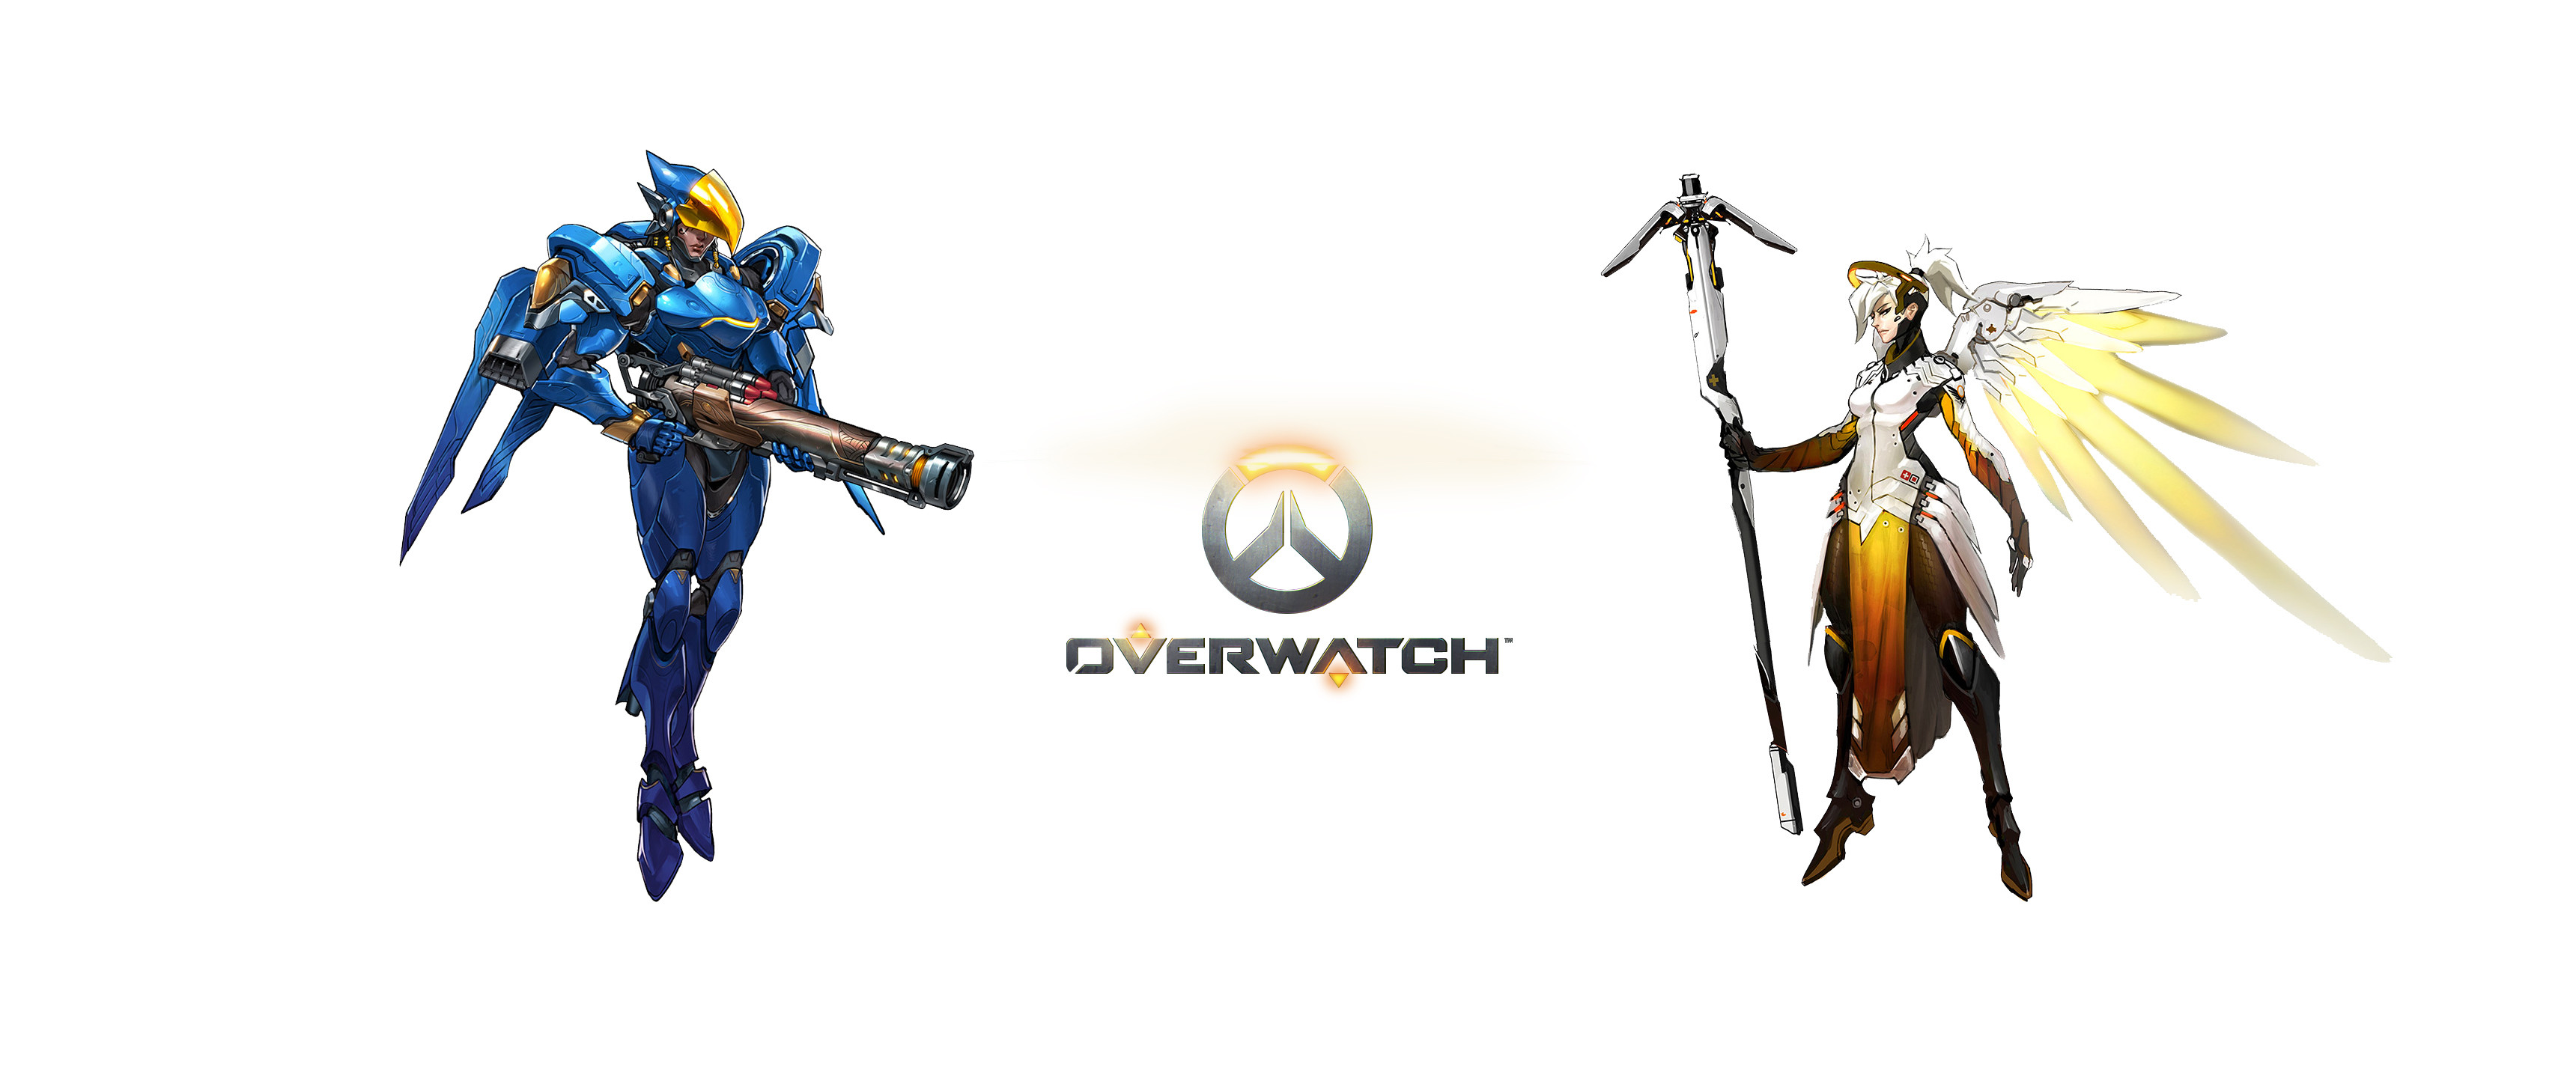 3440x1440 Video Game - Overwatch Pharah (Overwatch) Mercy (Overwatch) Bakgrund